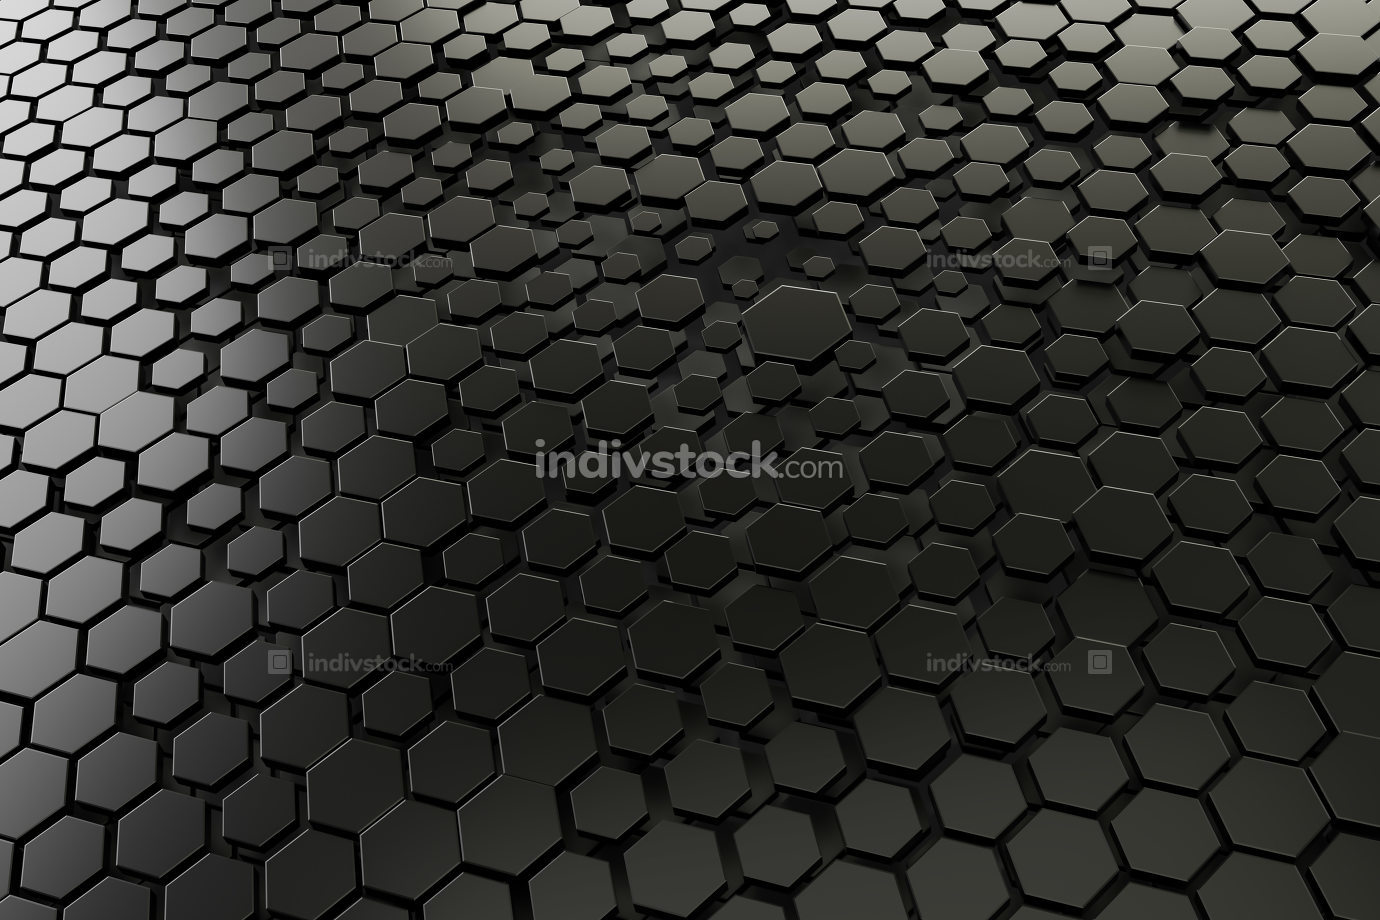 black and white hexagon background